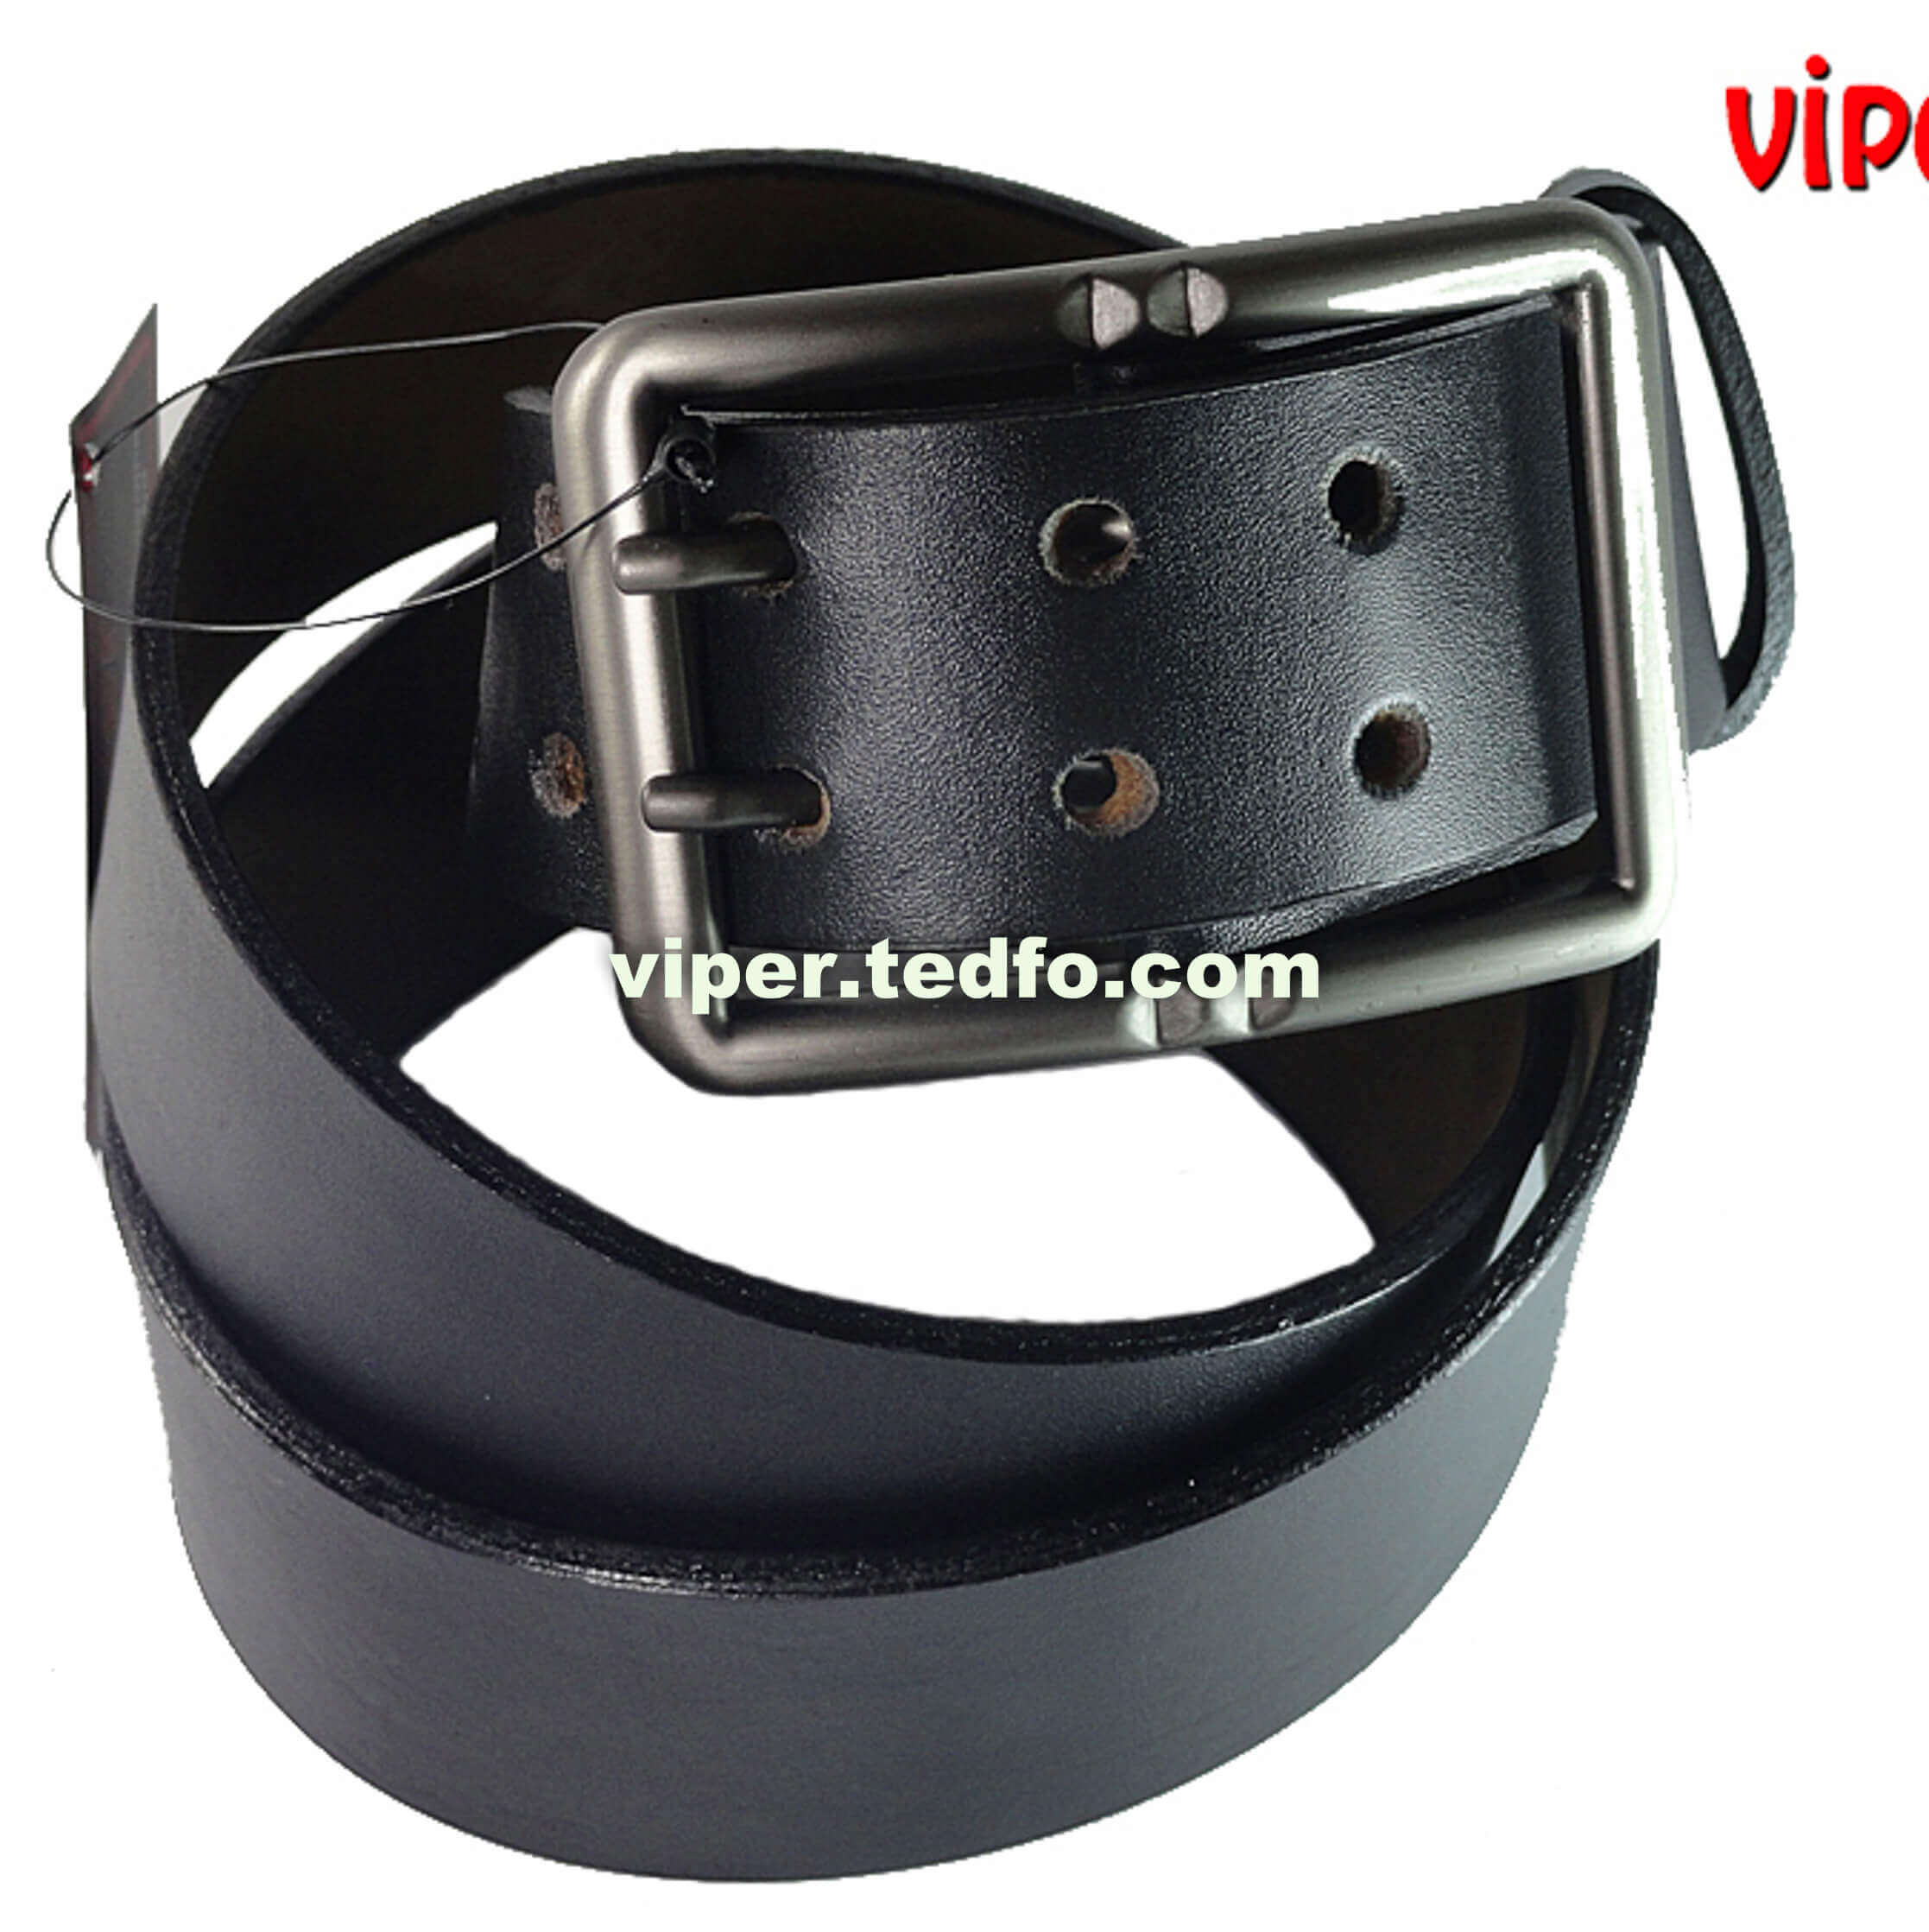 Wholesale Leather Made Casual Belt From Bangladesh Tedfo Com